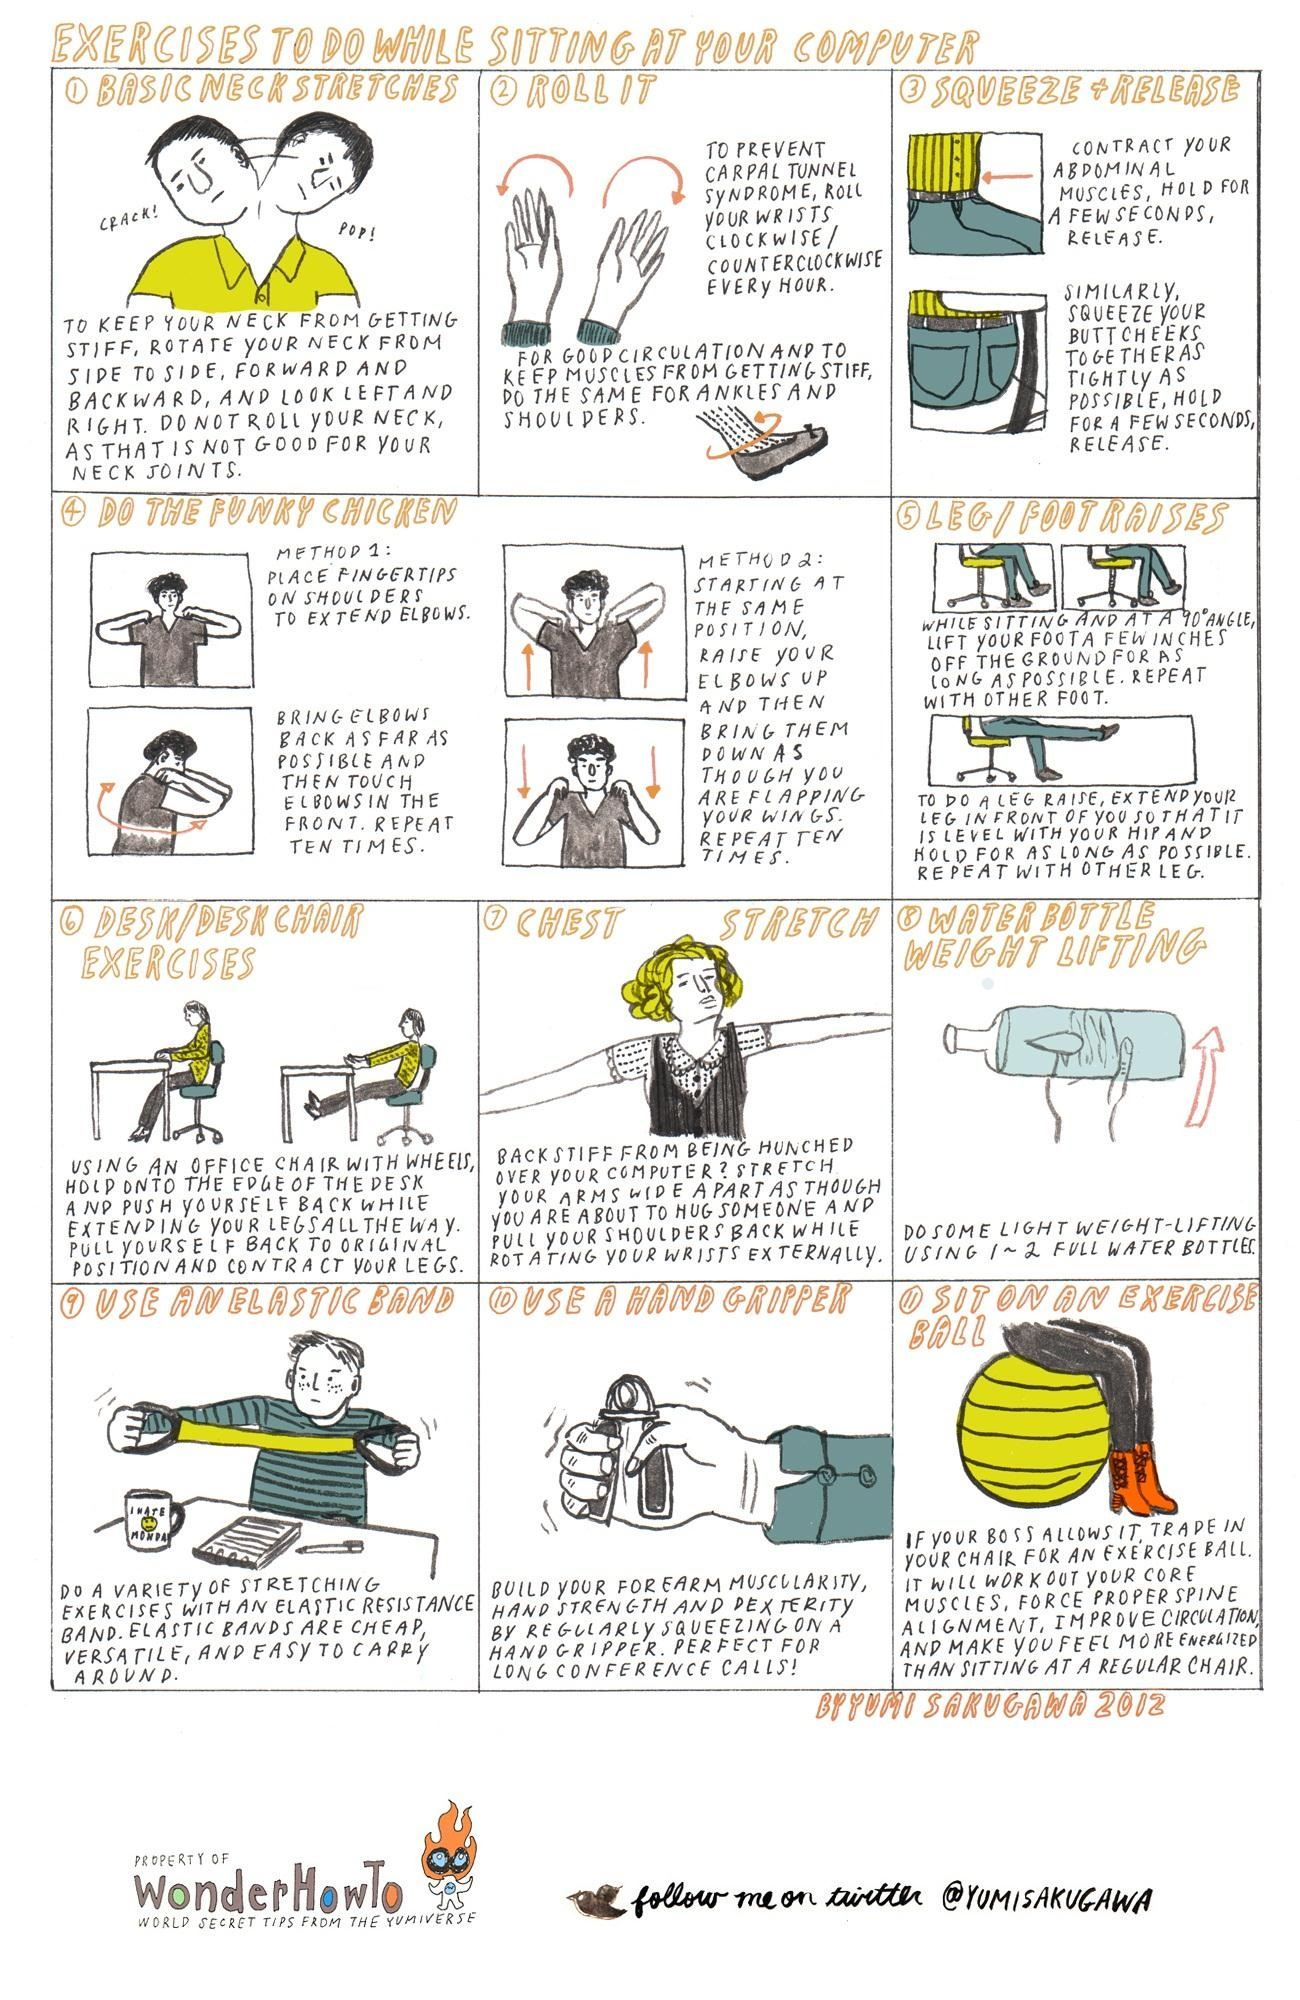 11 Exercises To Do While Sitting At Your Computer The